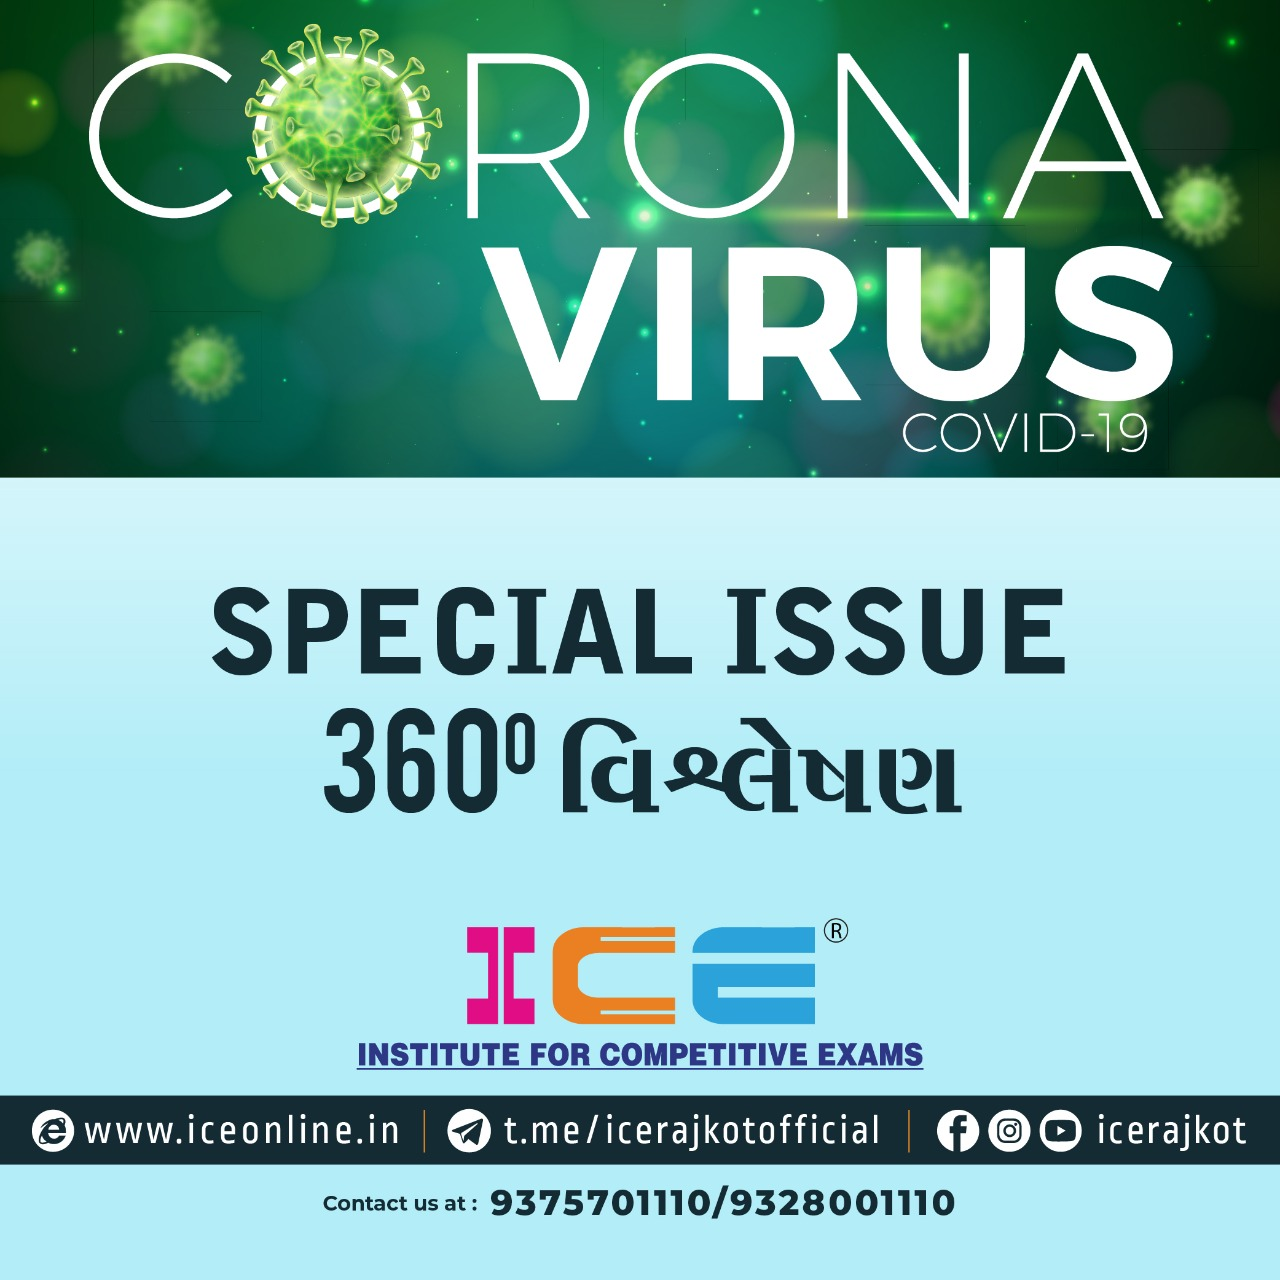 CORONA VIRUS SPECIAL ISSUE